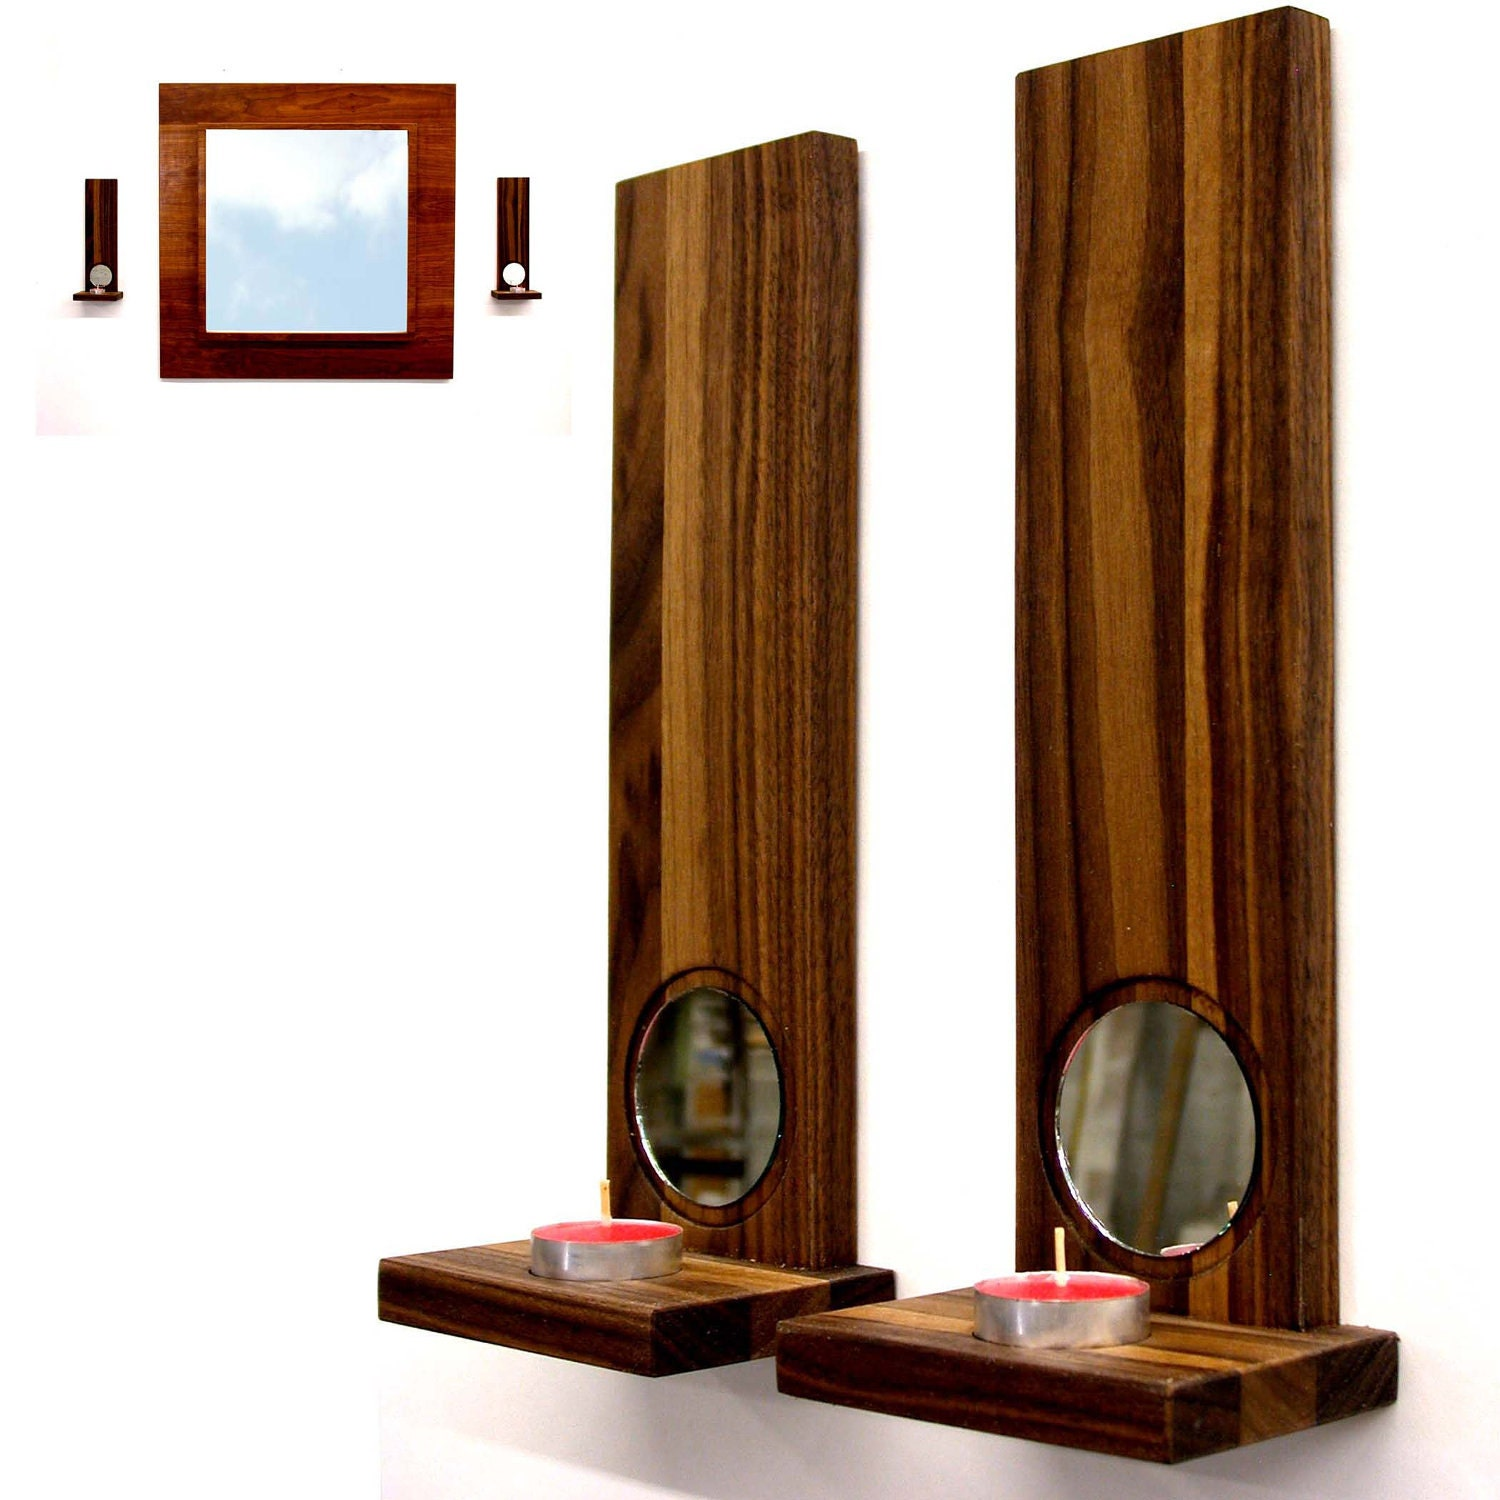 Modern Home Wall Sconces : Modern wall sconces candle holders home decor Walnut duo